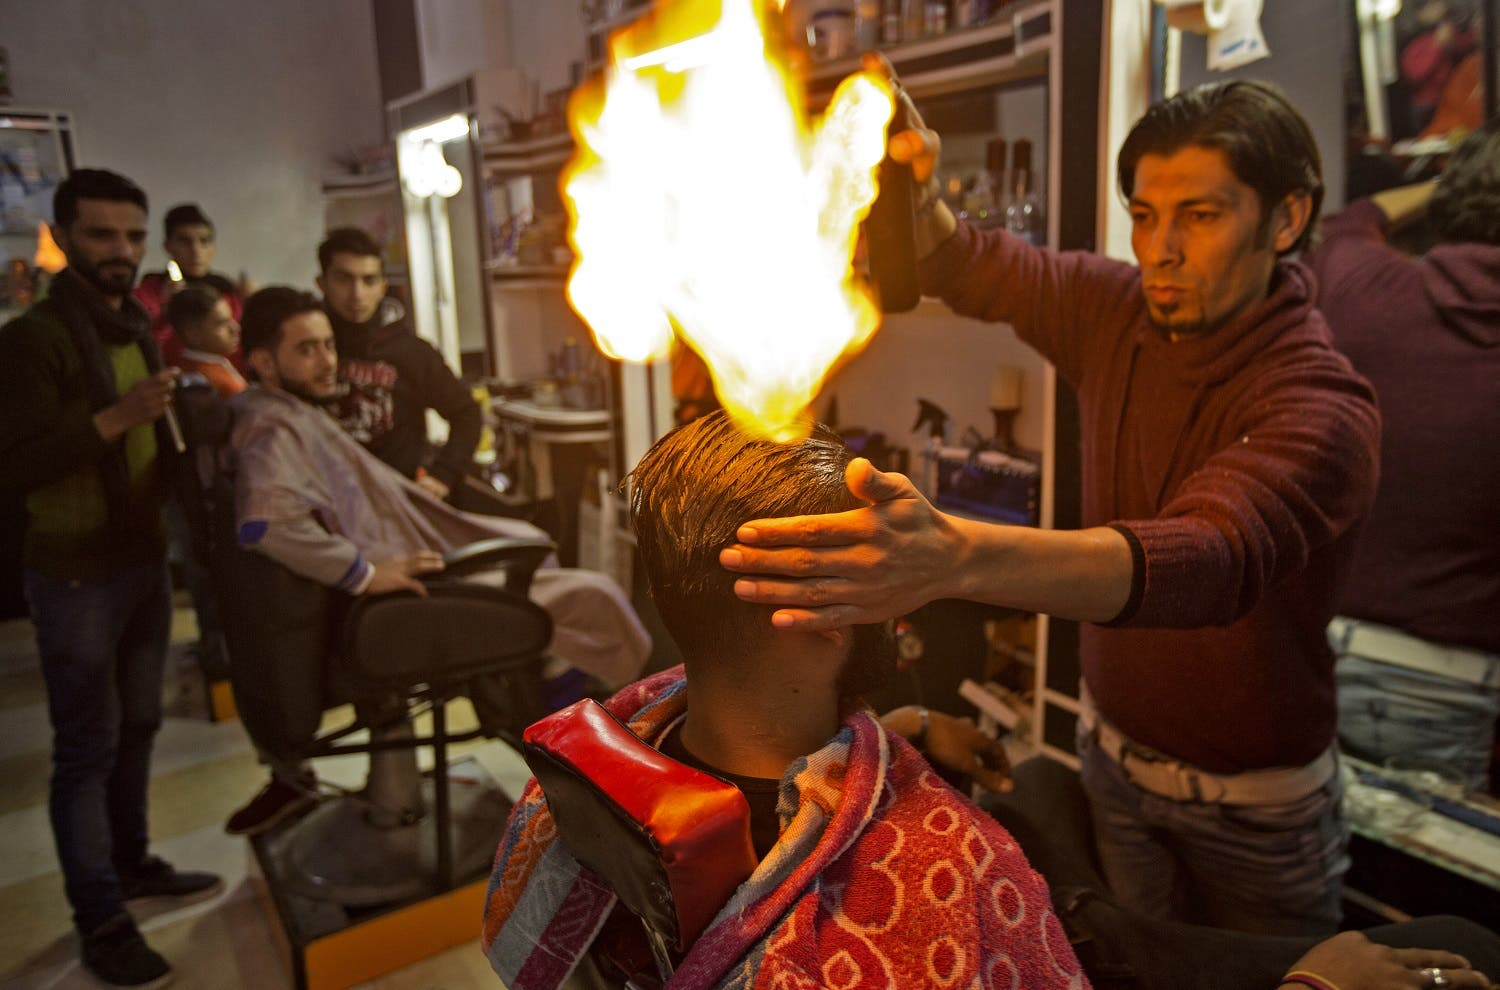 Ramadan Edwan, a Palestinian barber, uses fire in a hair-straightening technique with a client at his salon in the Rafah refugee camp, in the southern Gaza Strip on February 1, 2017.